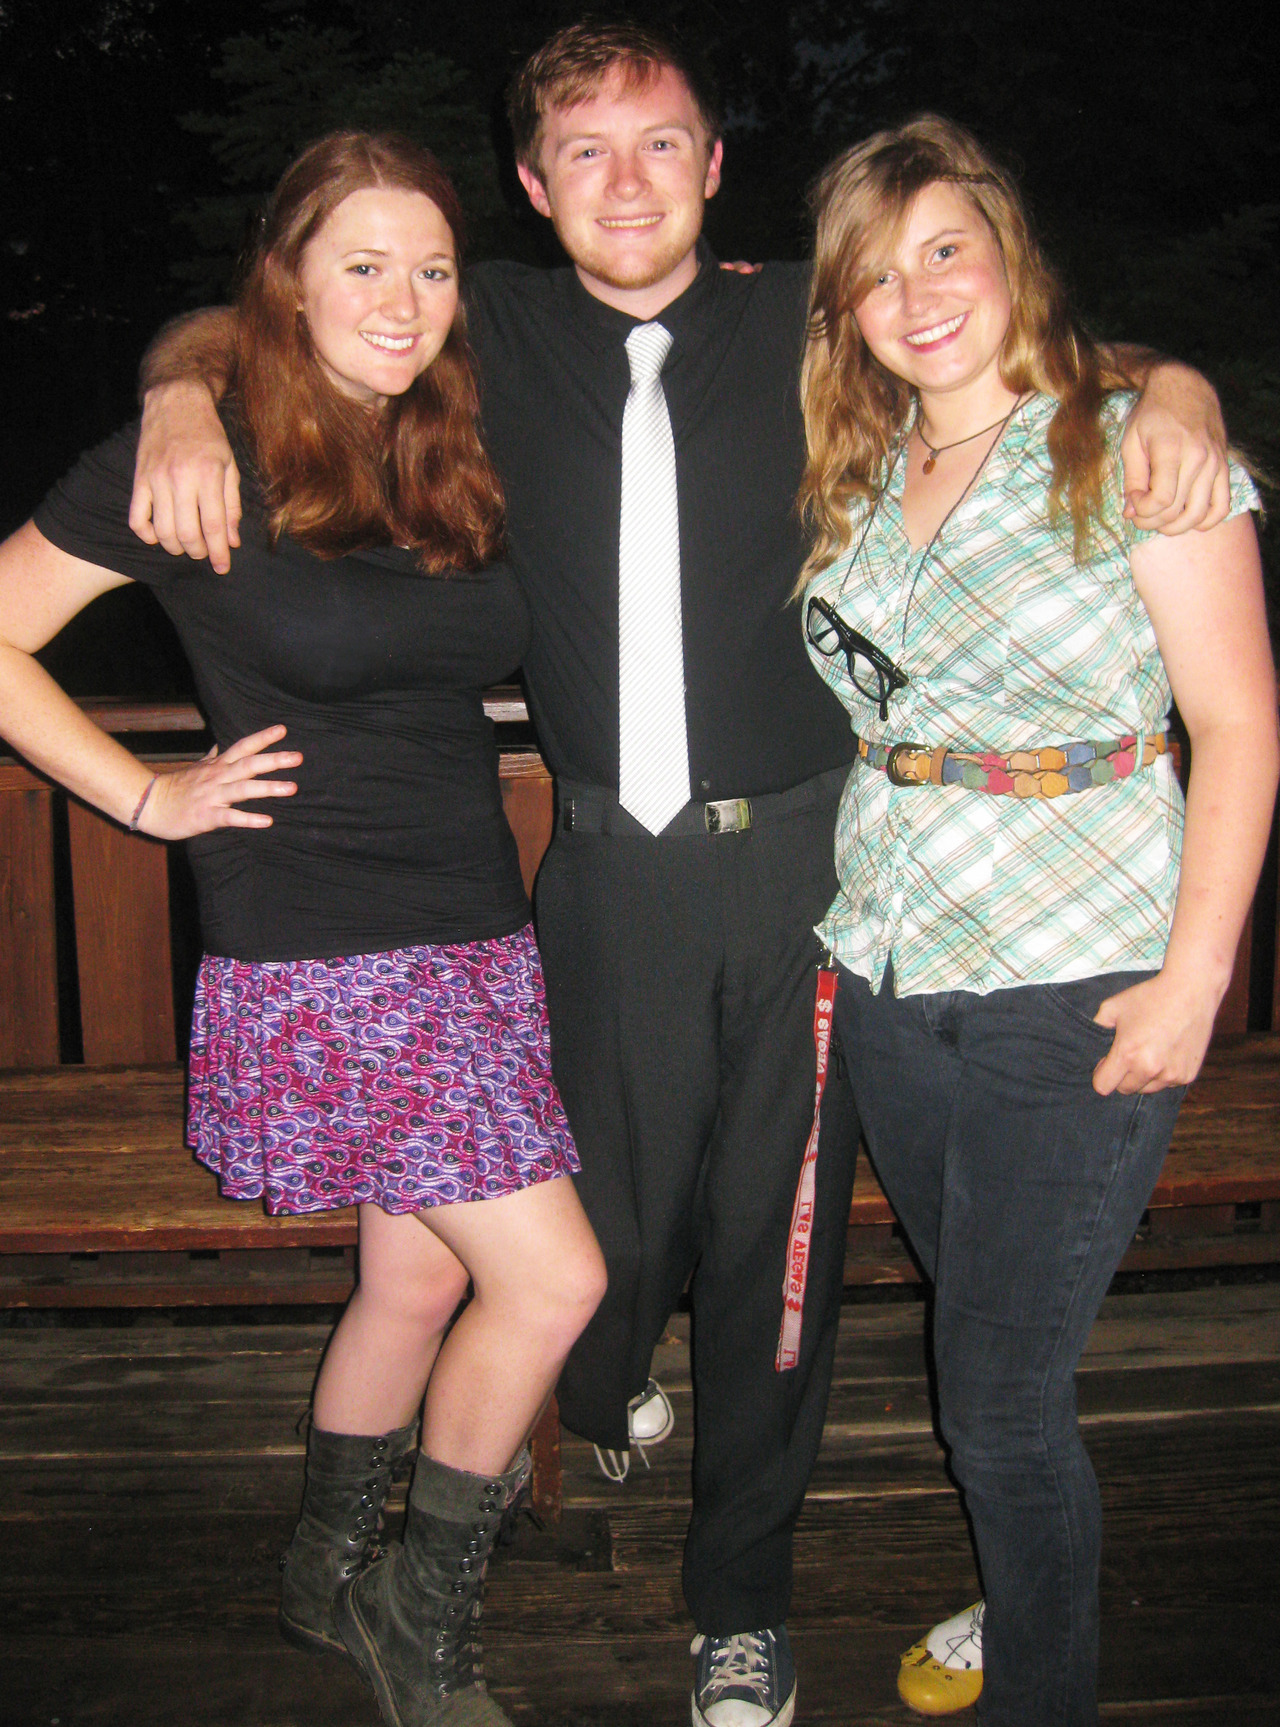 "Me/Riley/Thea dolled up for the dance at the junior high camp where we were all counselors together this past week. Together for 4+ years (although we only just realized a few months ago that we've been in a poly relationship all this time…definitely quite the ""aha!"" moment!)."